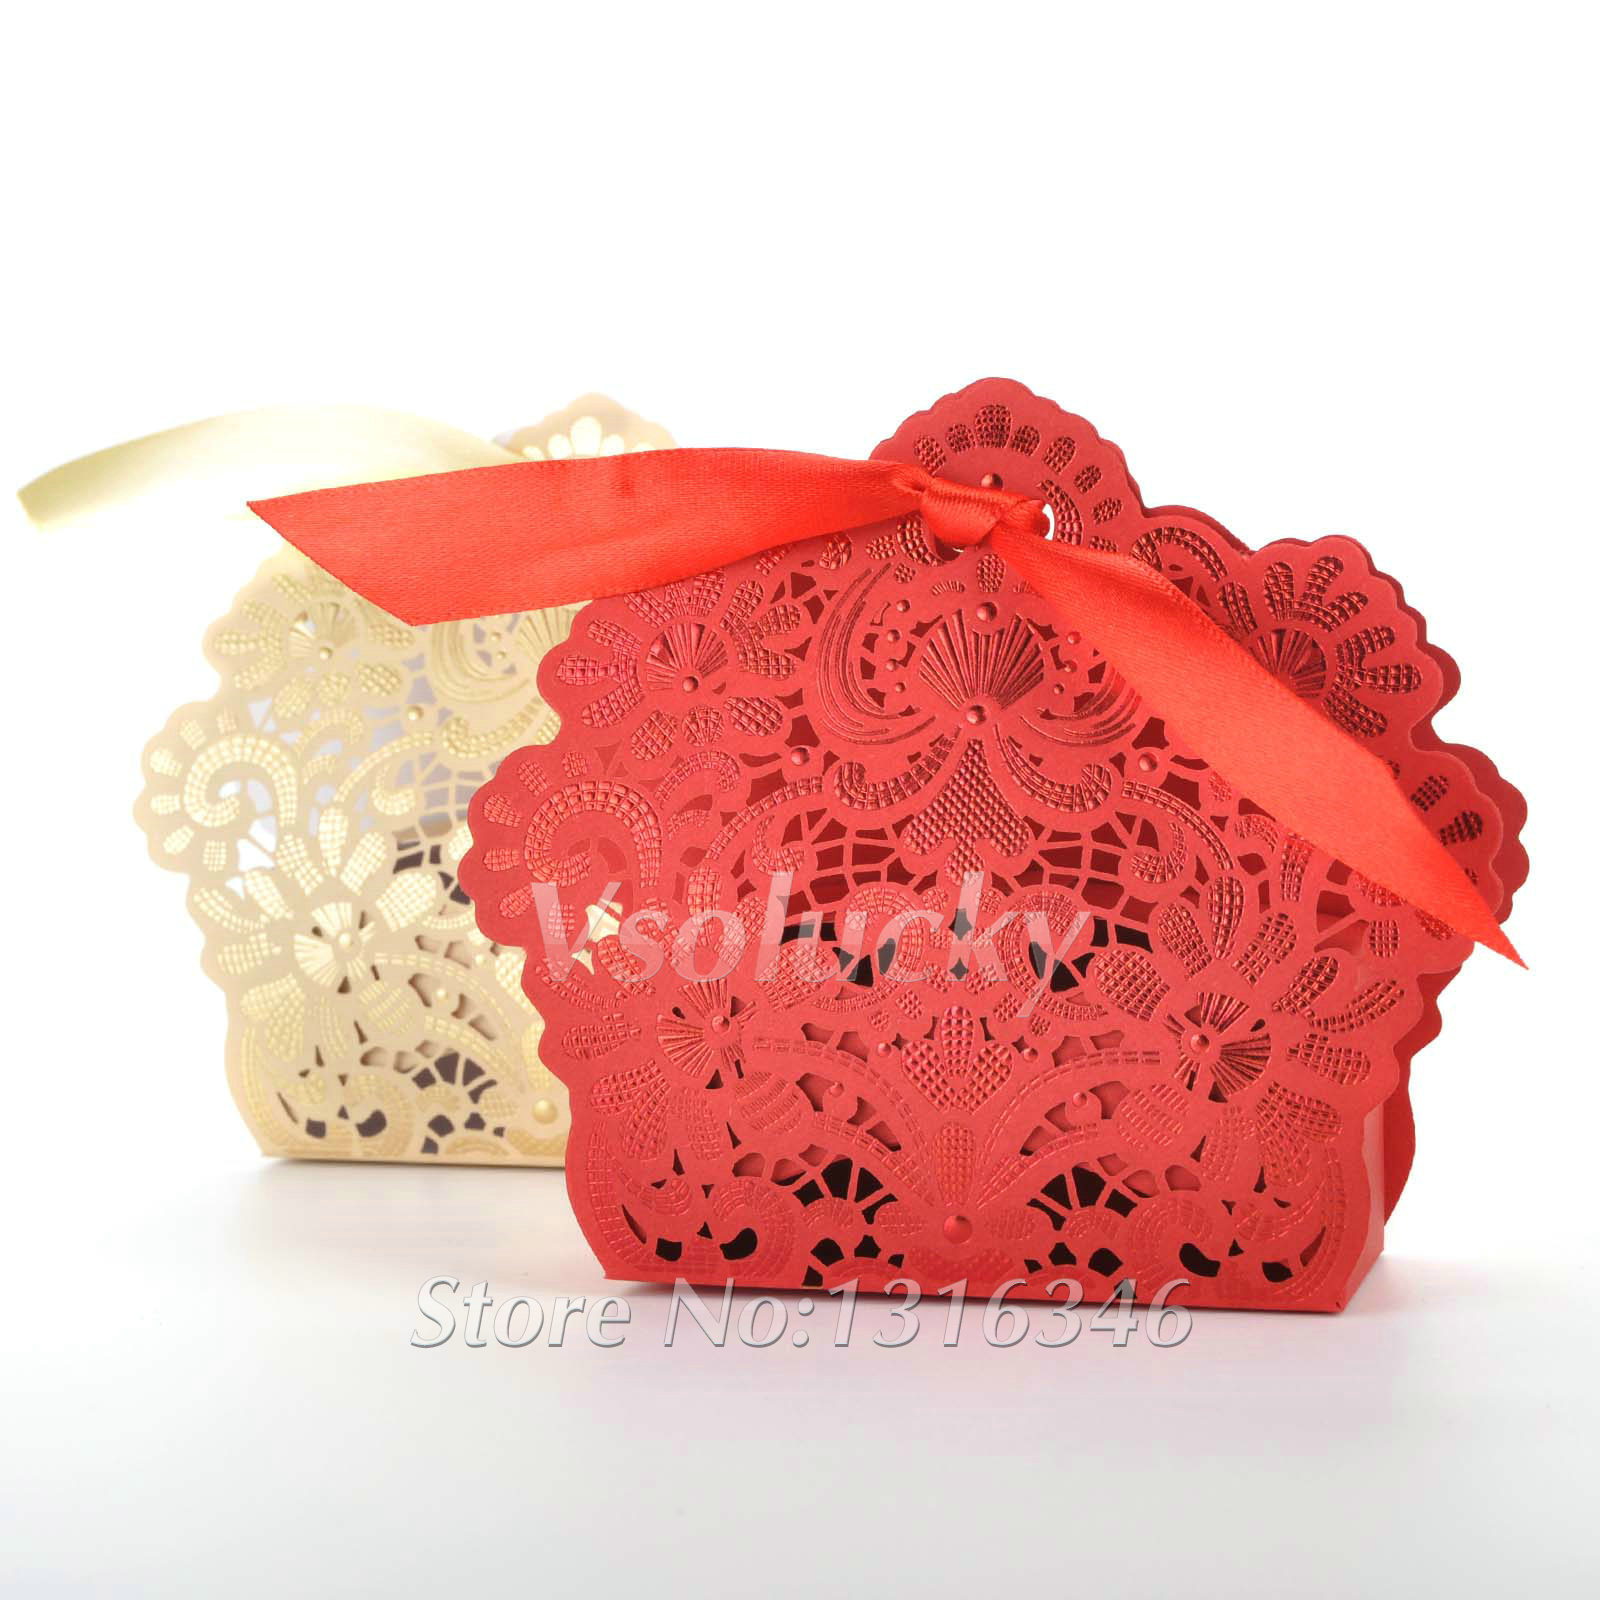 100pcs Lot Wedding Candy Box Gold Red White Laser Cut Favor Bo Casamento Favors Gifts In Gift Bags Wring Supplies From Home Garden